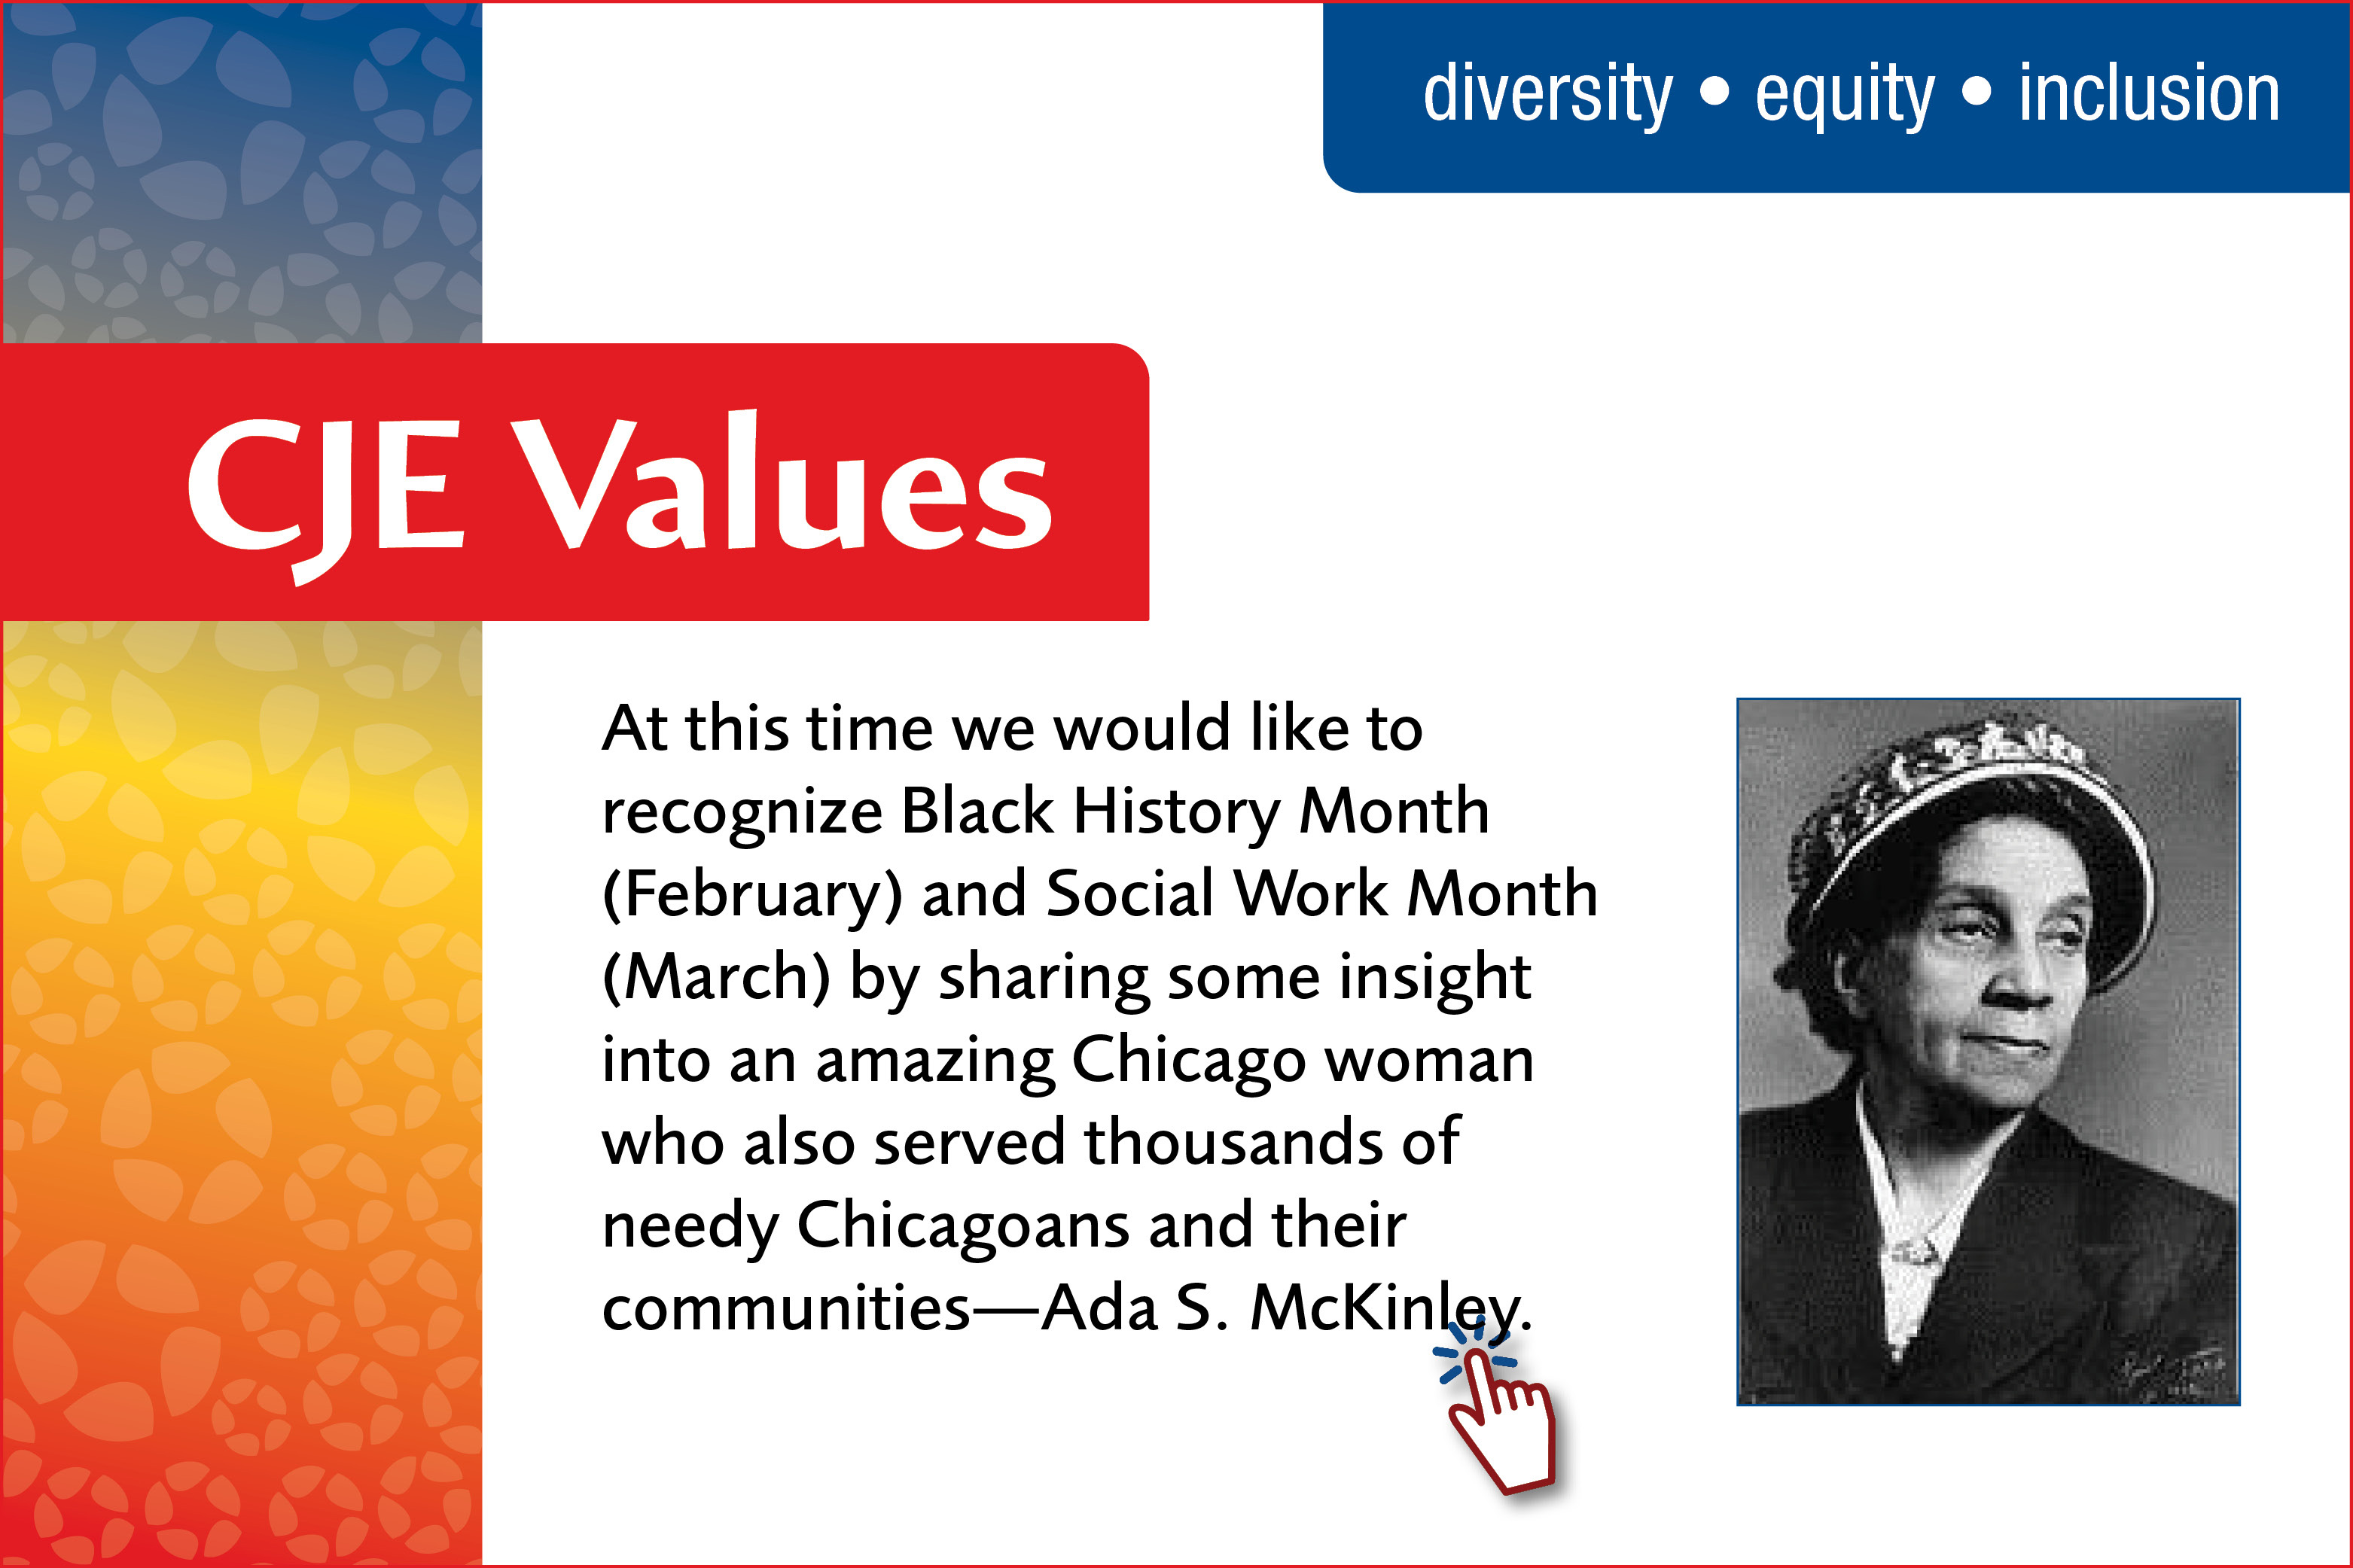 At this time we would like to recognize Black History Month (February) and Social Work Month (March) by sharing some insight into an amazing Chicago woman who also served thousands of needy Chicagoans and their communities—Ada S. McKinley